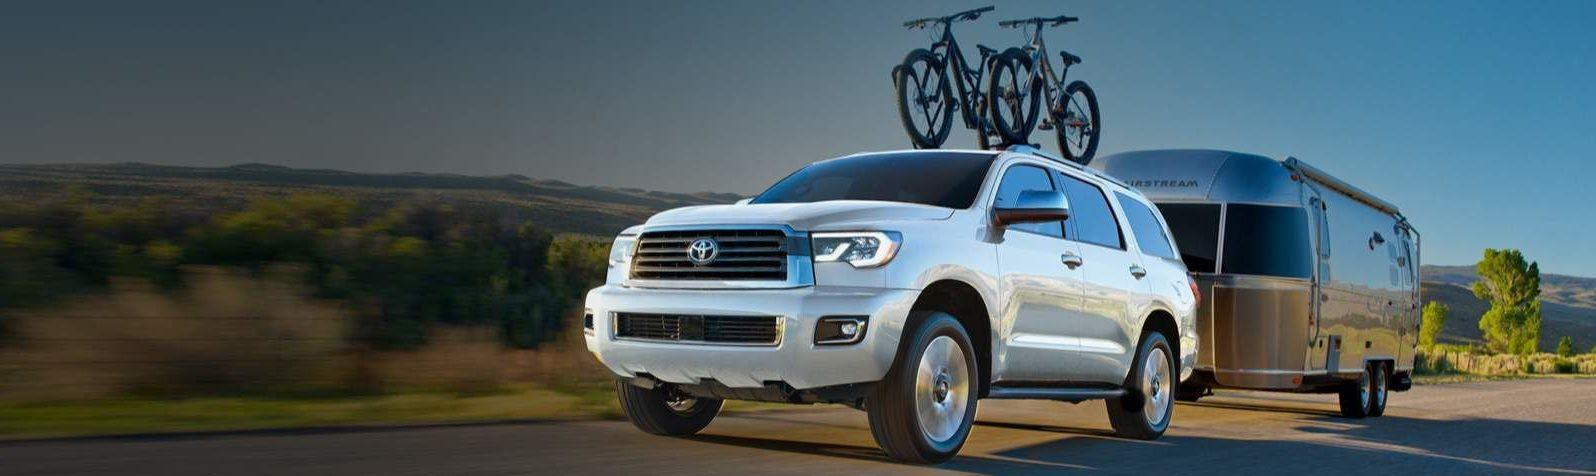 2021 Toyota Sequoia with a bikes on top and pulling a trailer